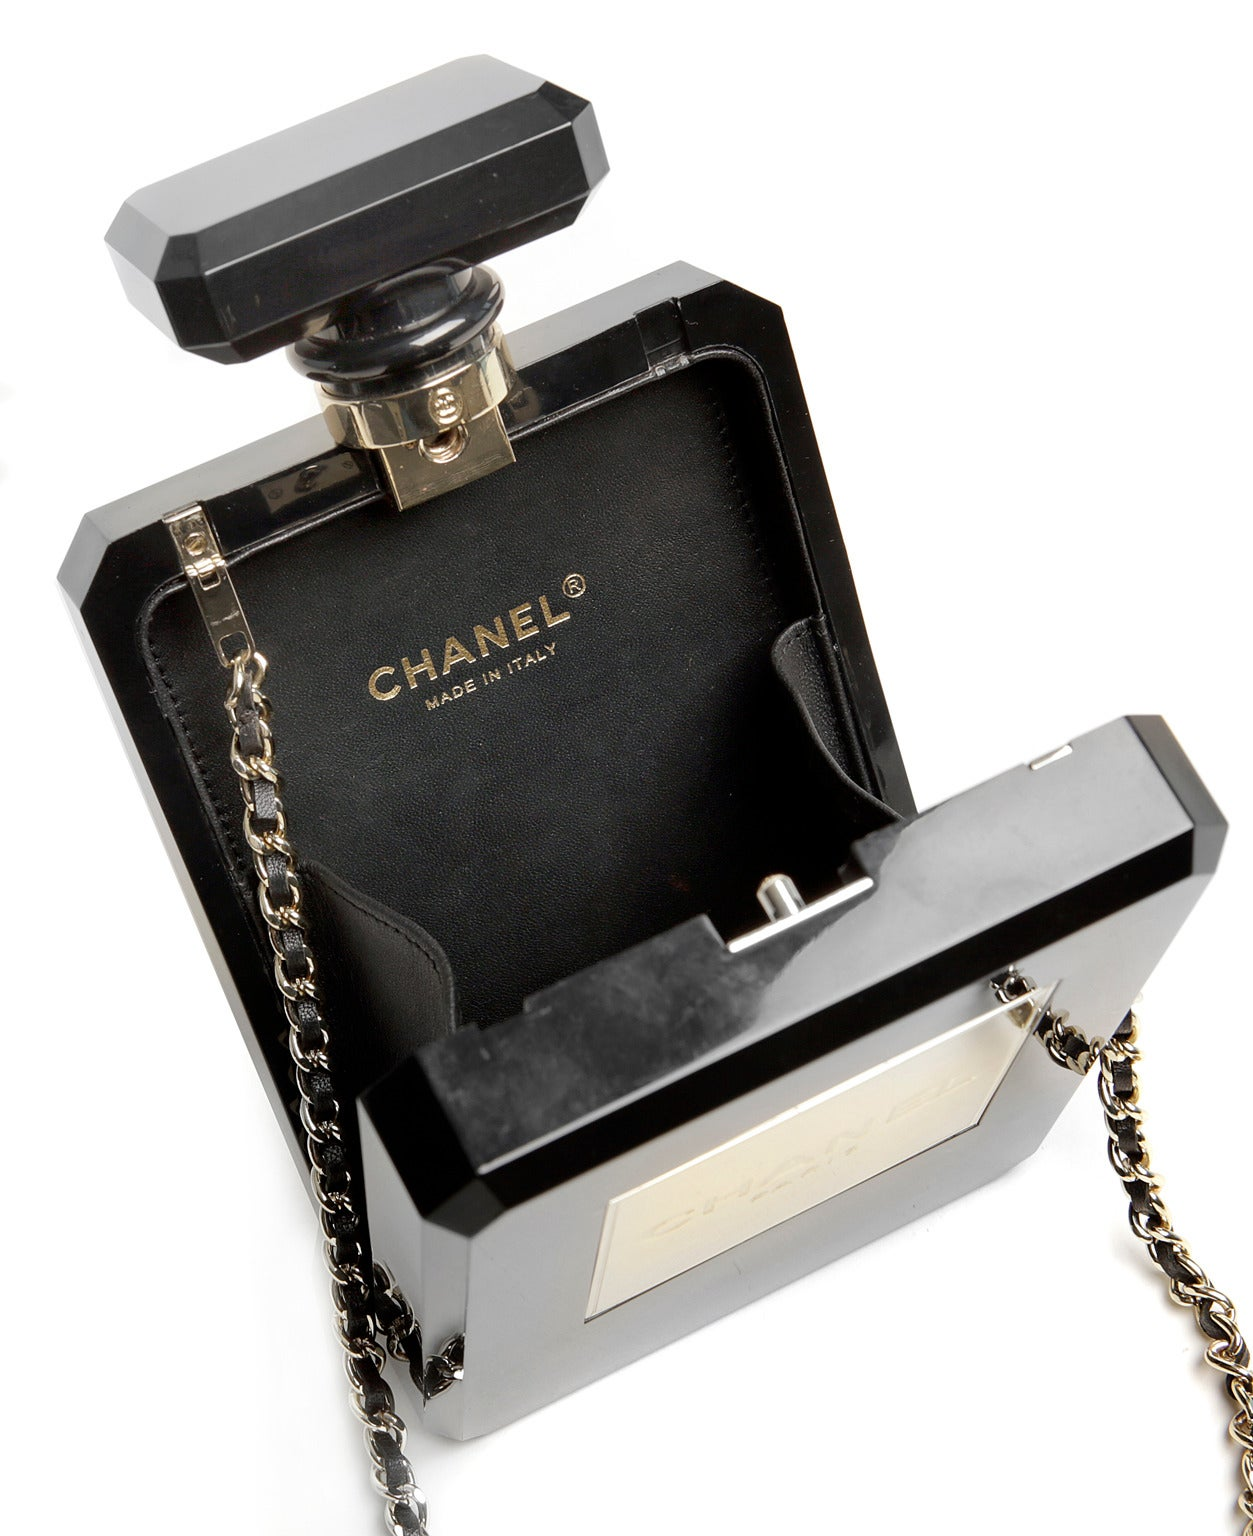 Chanel Black Perfume Bottle Bag- RARE 7